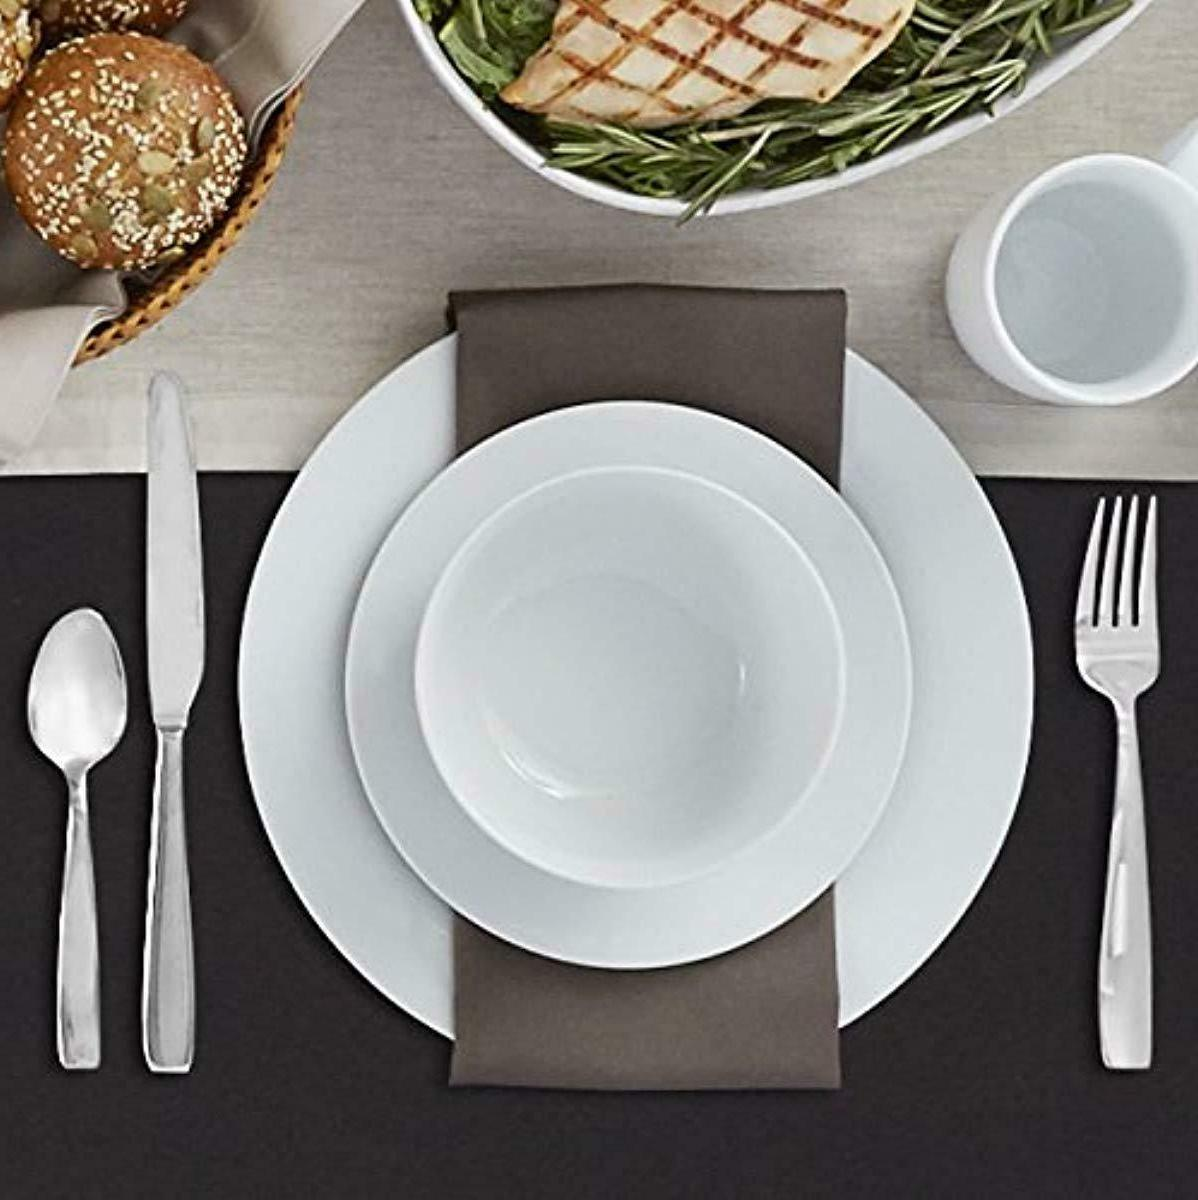 AmazonBasics 16-Piece Set, Plates, Bowls, Service for